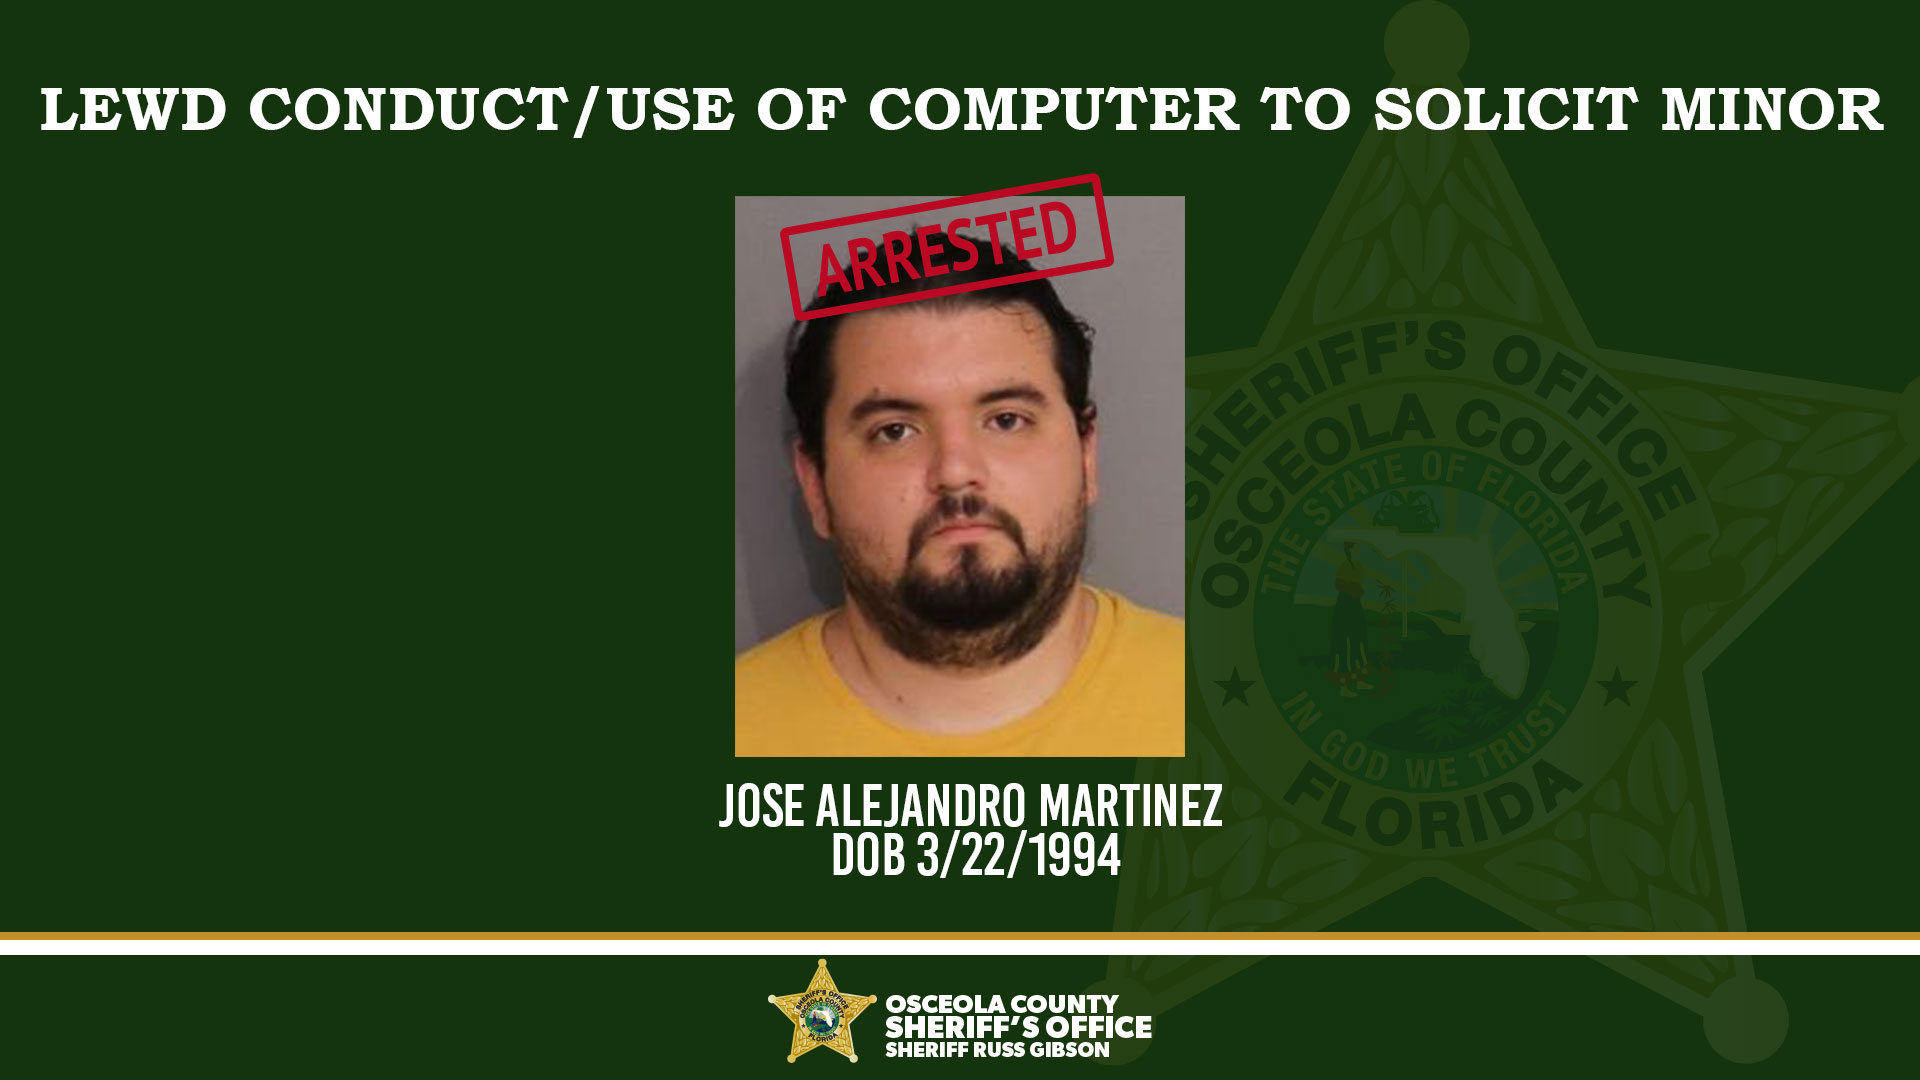 Lewd Conduct/Use of Computer to Solicit Minor